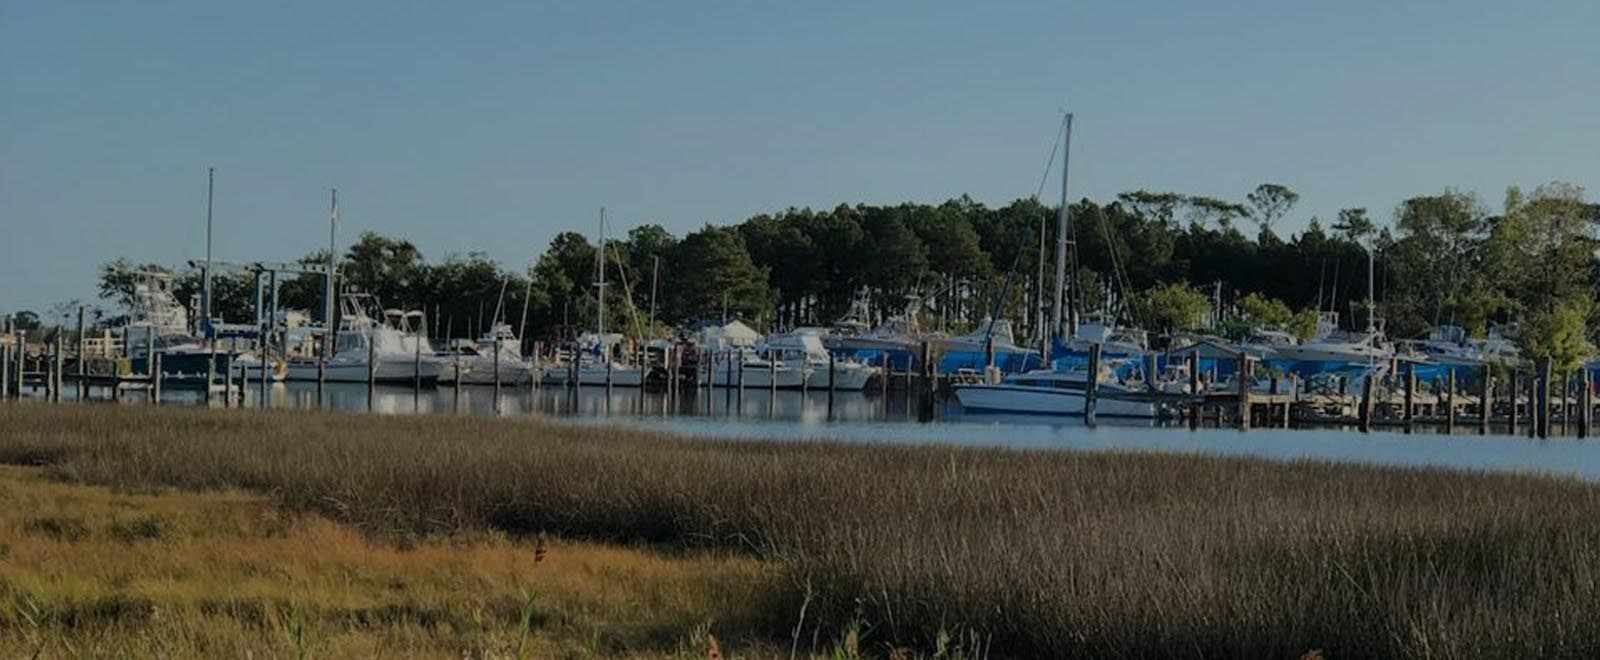 WELCOME TO BELL ISLE MARINA IN HAMPTON, VIRGINIA